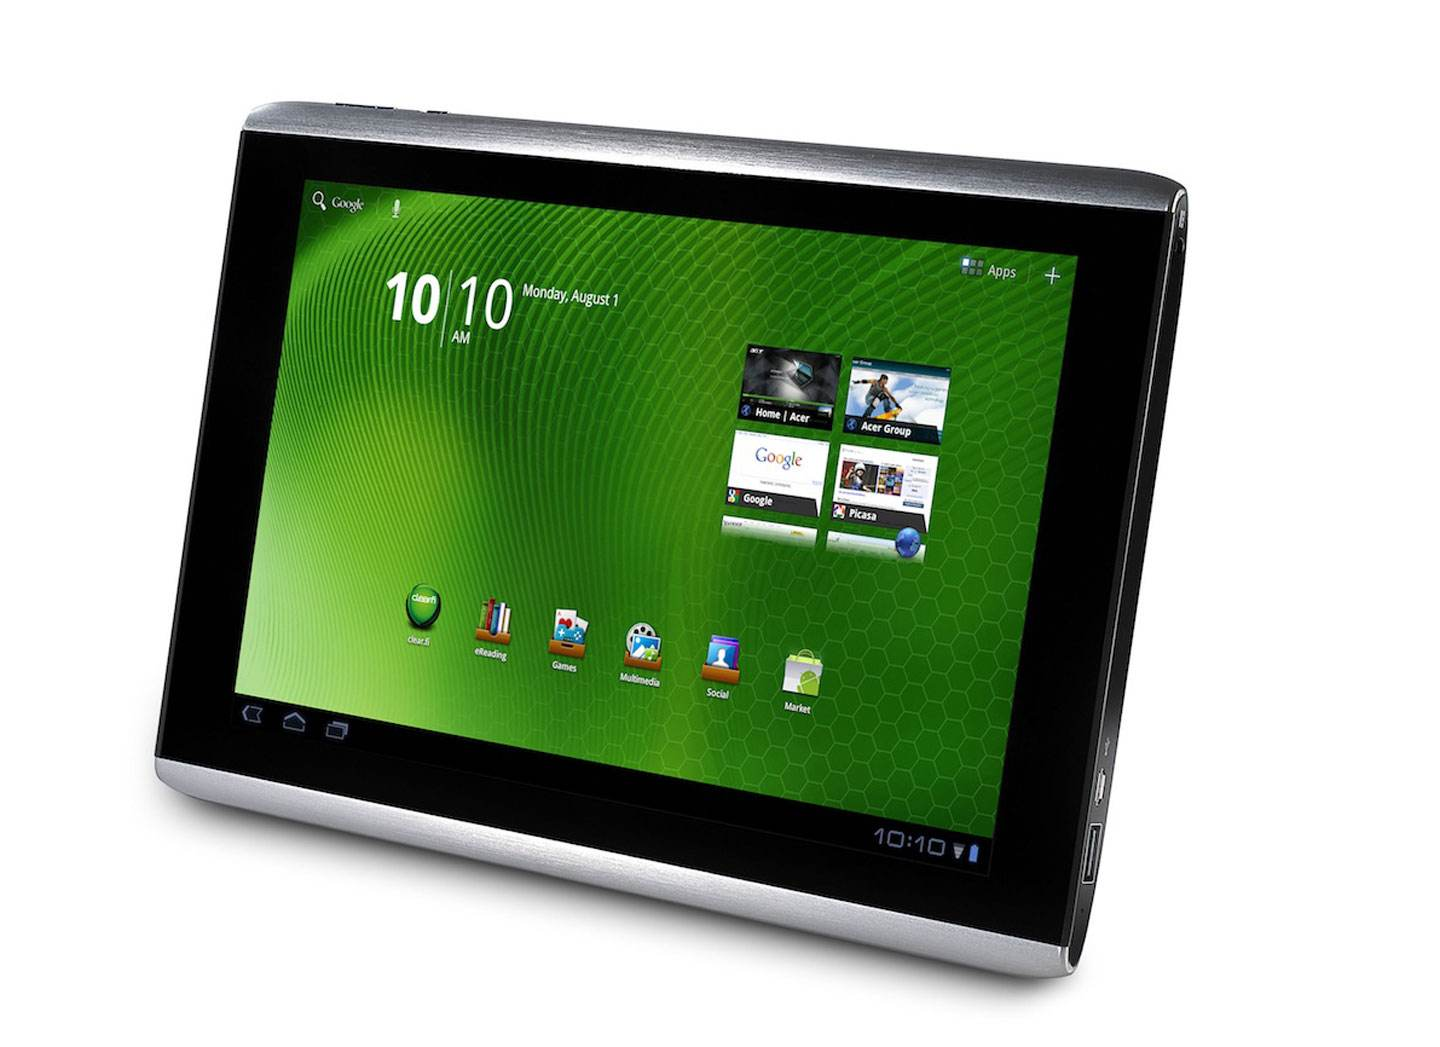 Acer Iconia Tab A500 price in Pakistan